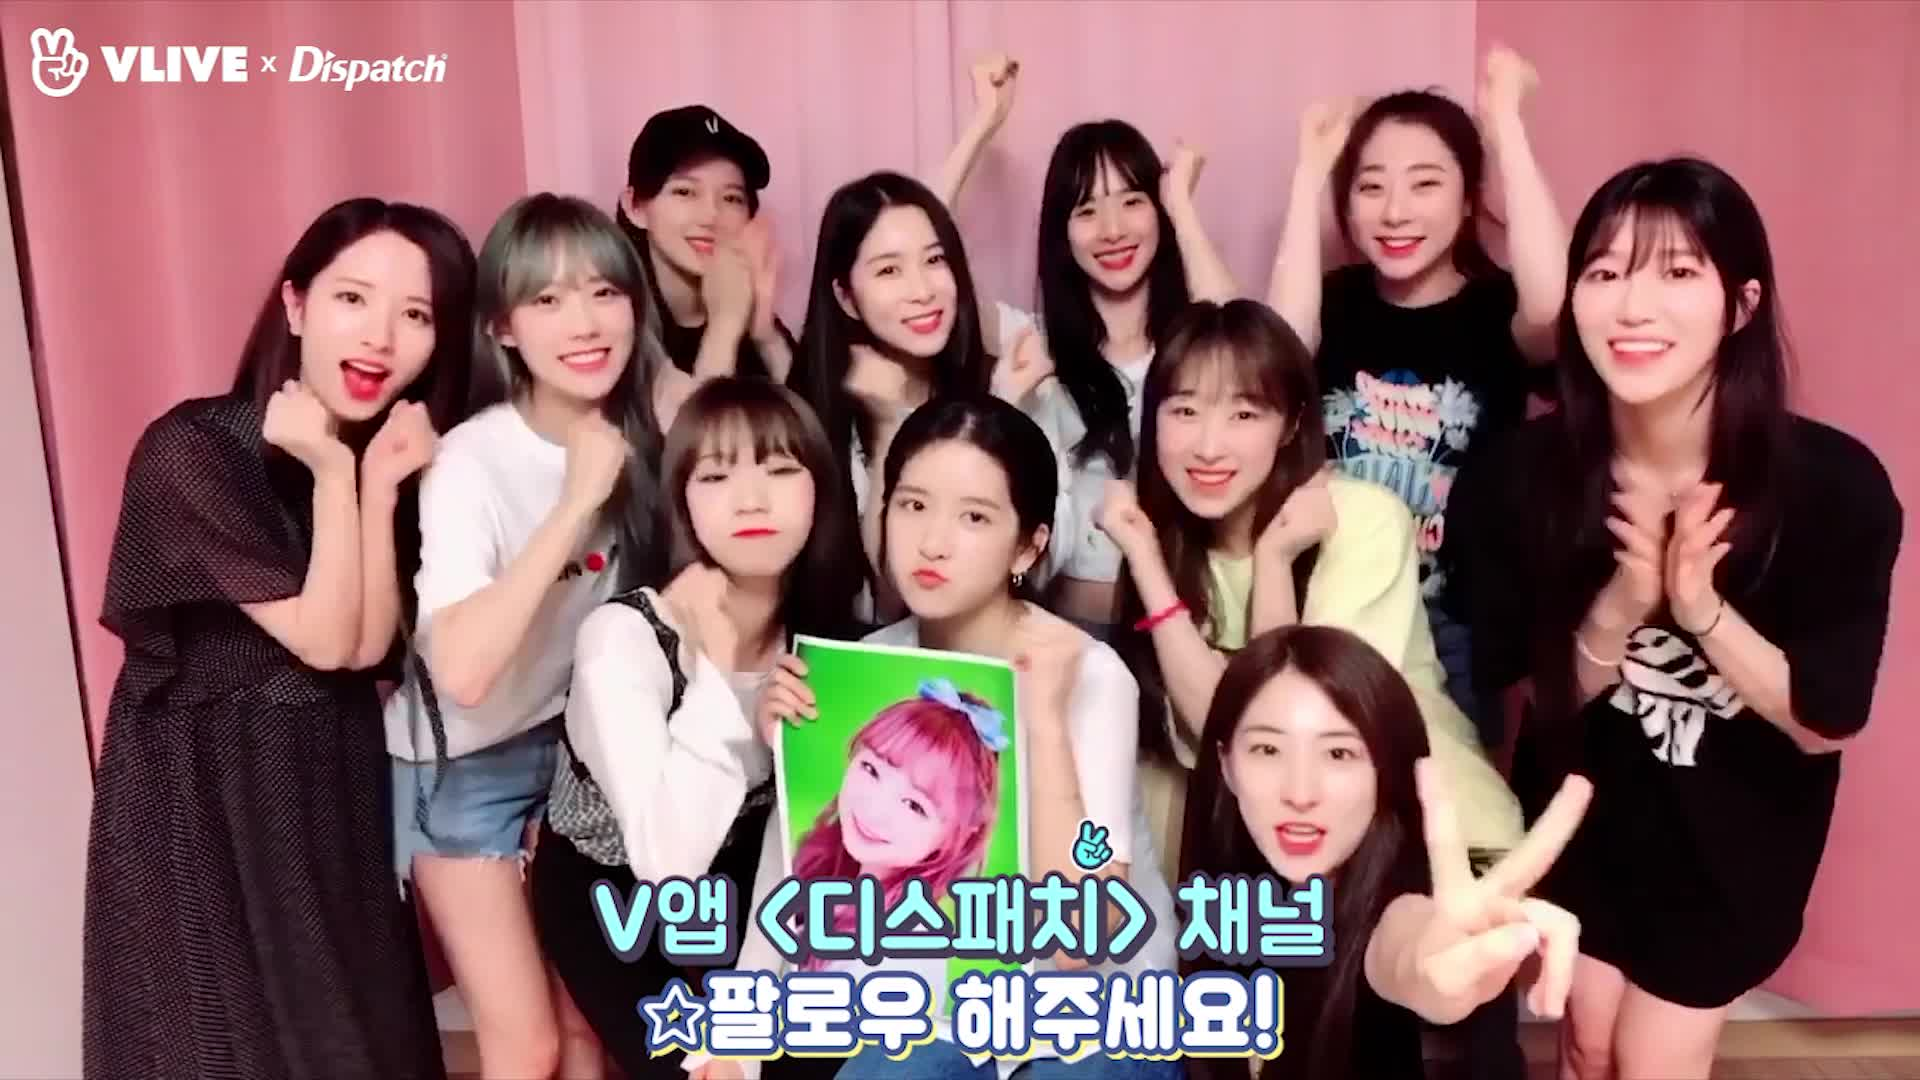 Welcome Opening for 'V Dispatch' 우주소녀 (WJSN)